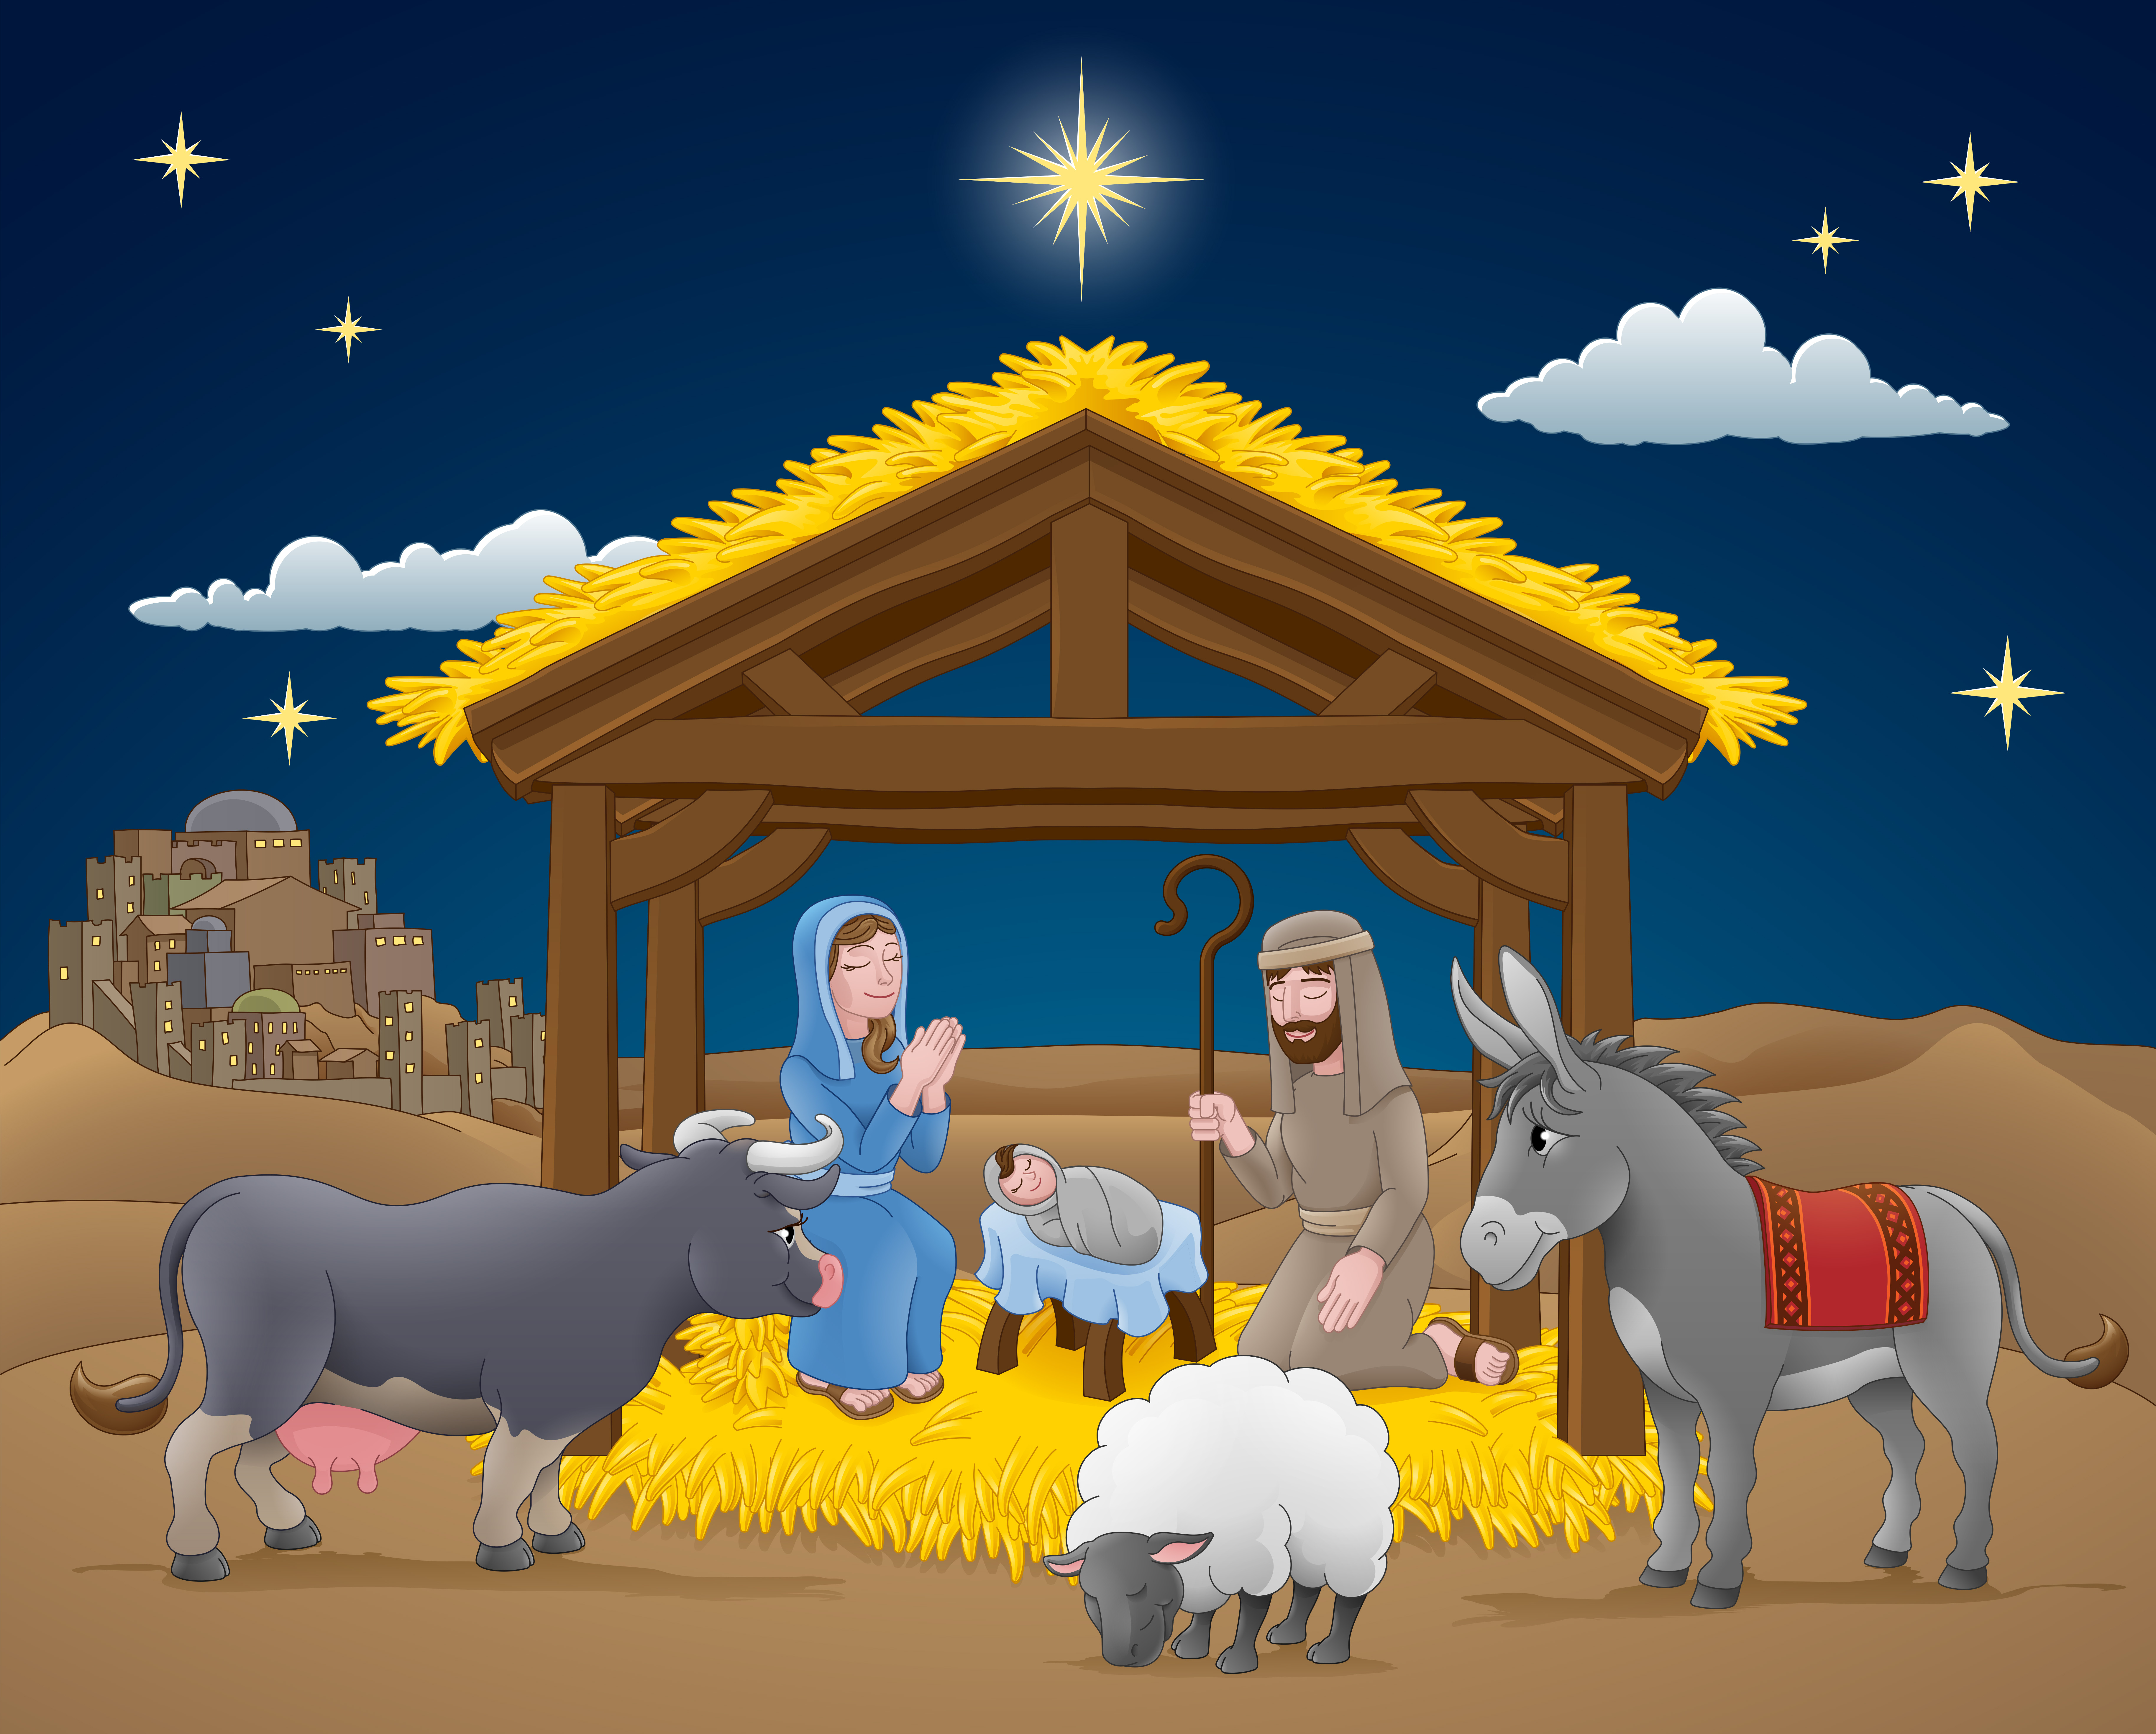 image about Twas the Night Before Jesus Came Printable known as Introduction and Xmas Childrens Sunday University Classes